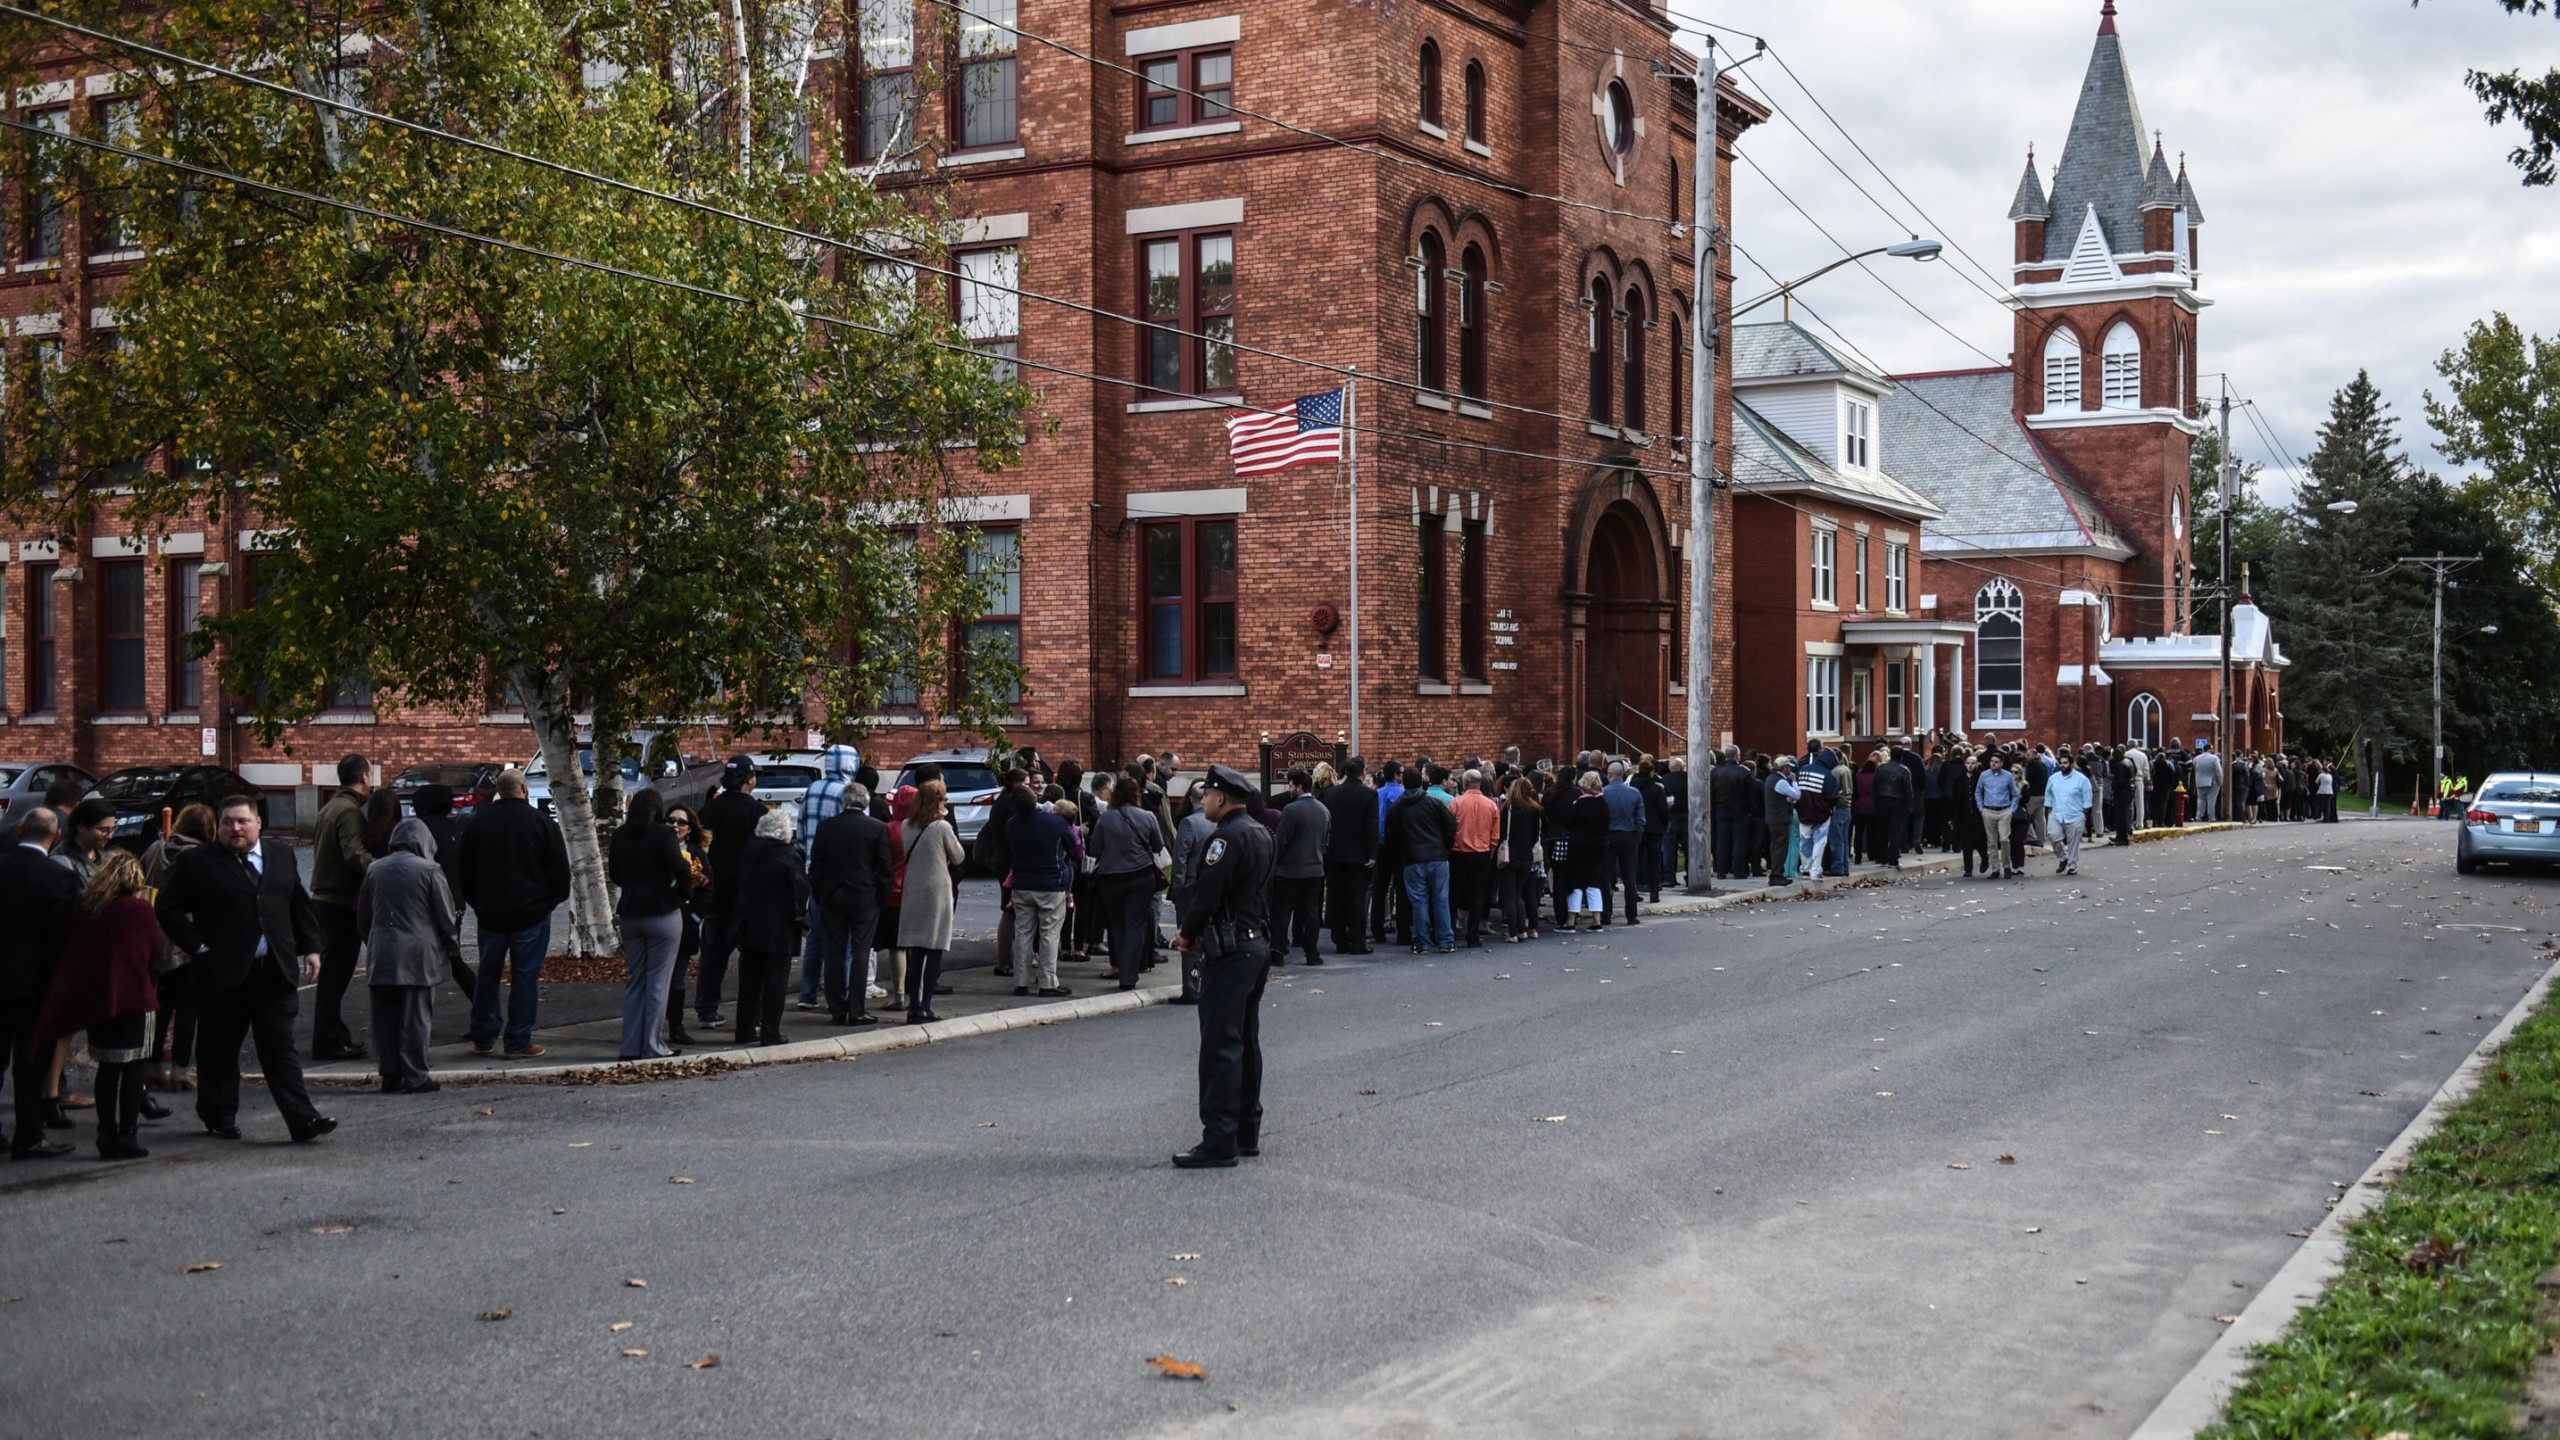 Mourners line up in front of St. Stanislaus Roman Catholic Church to pay their respects to some of the victims in last weekend's fatal limo crash on October 12, 2018 in Amsterdam, New York. (Credit: Stephanie Keith/Getty Images)